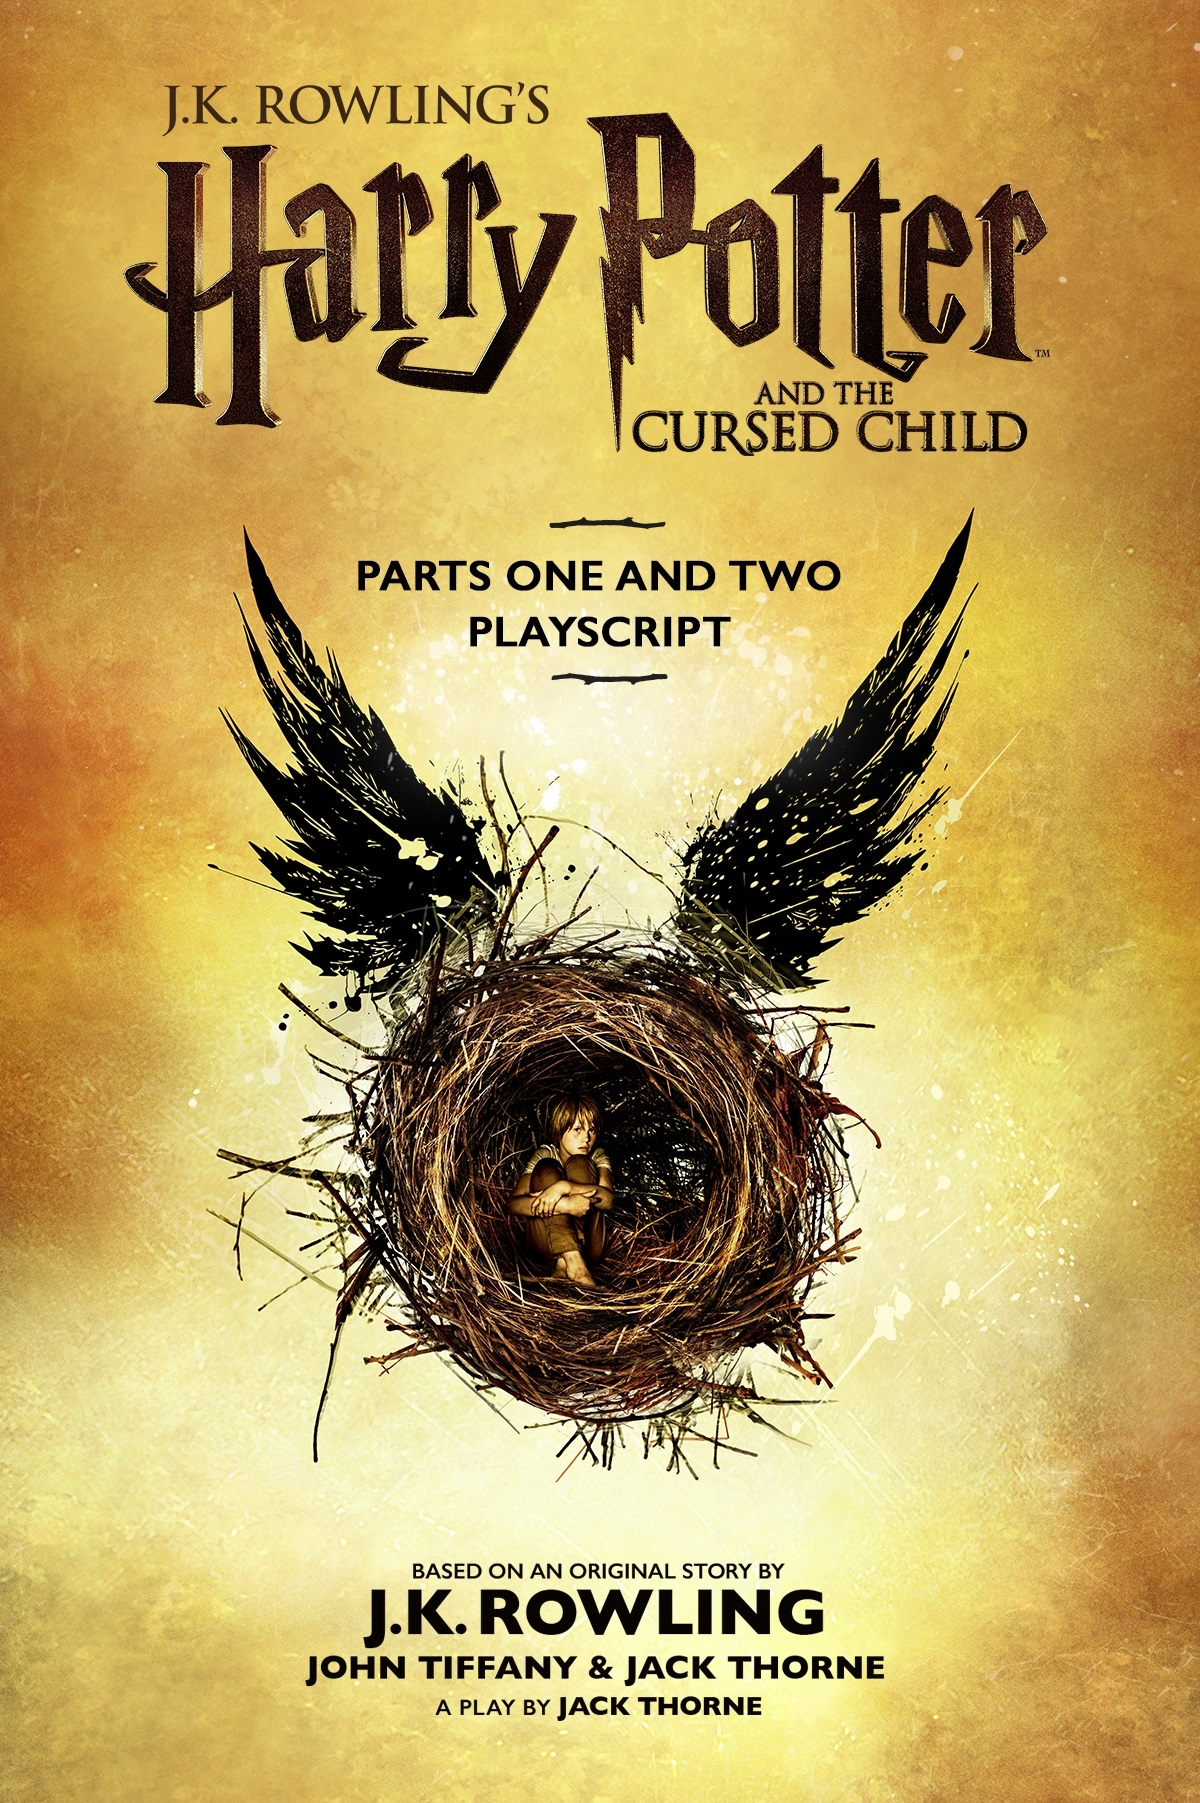 Cover Image of Harry Potter and the Cursed Child - Parts One and Two